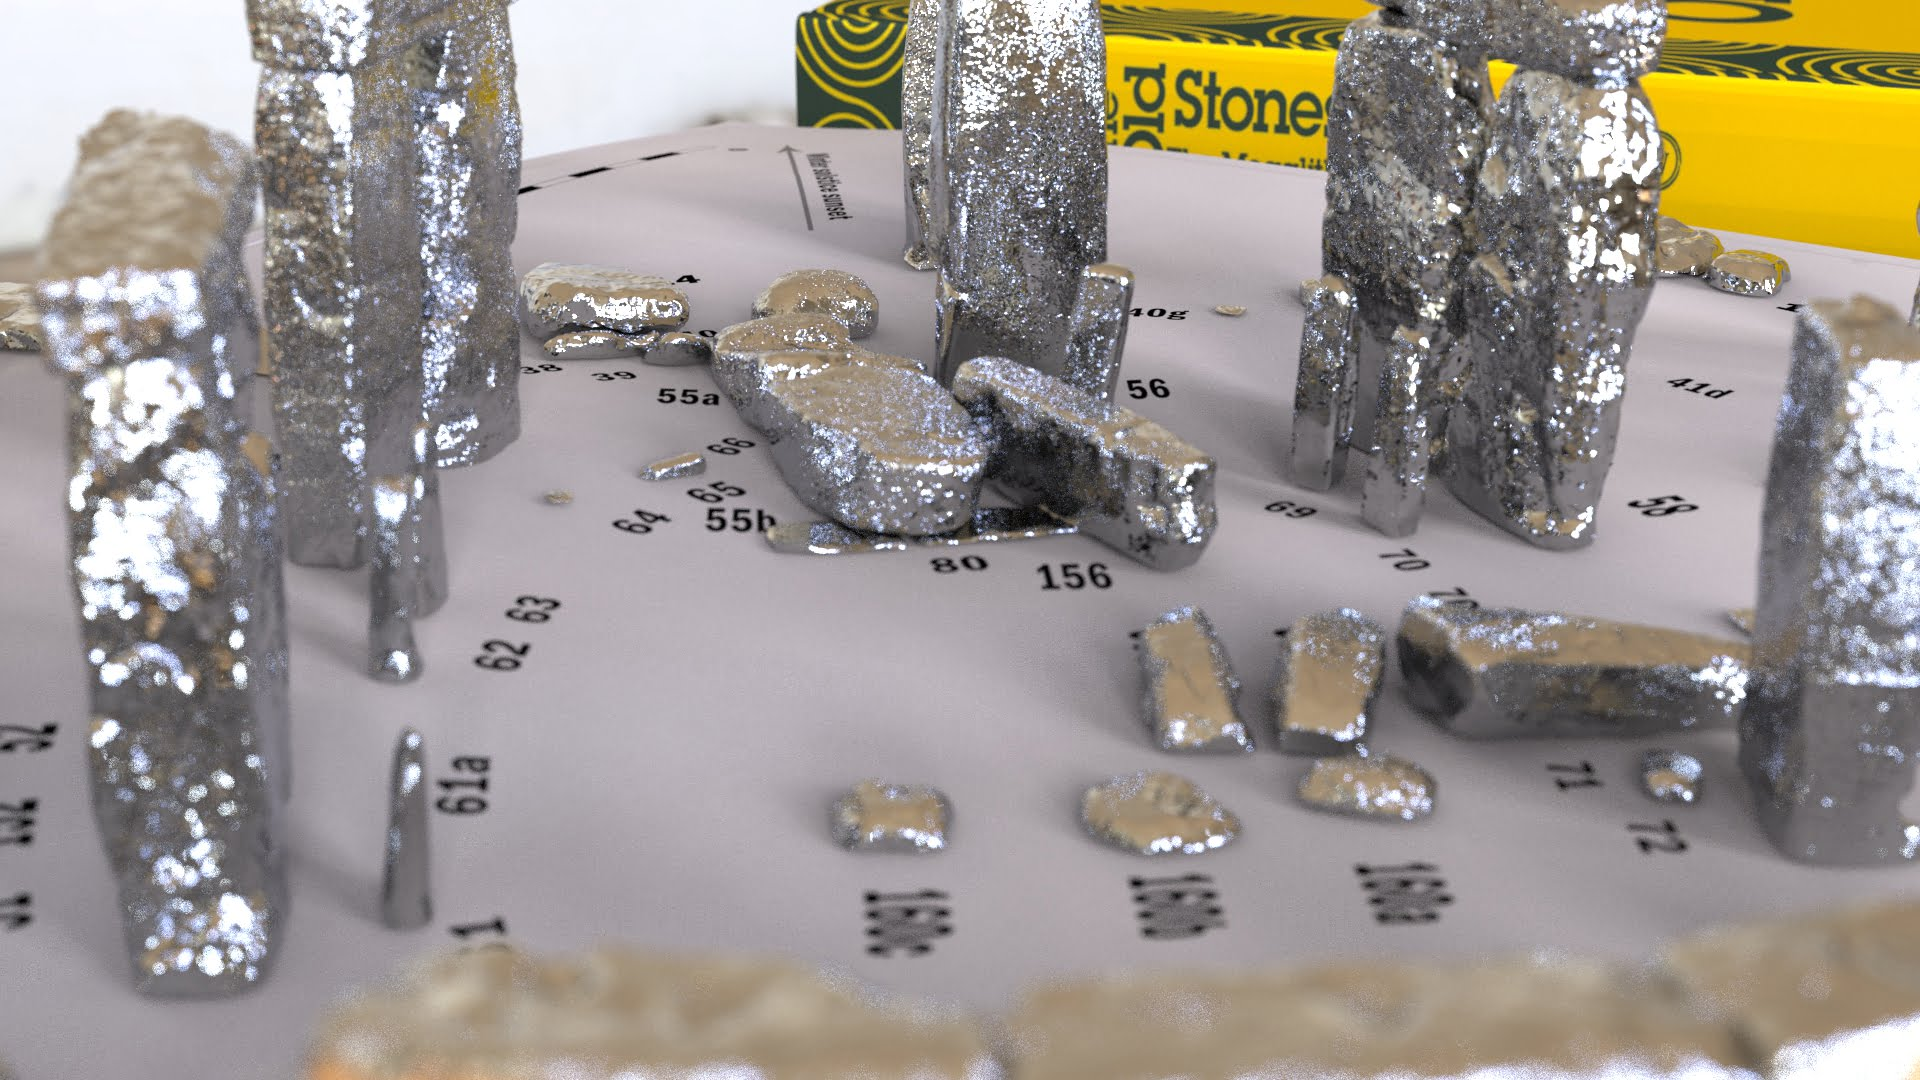 Buy Stonehenge Models: Silver Stonehenge replica models at 200th scale. white ground 37  - 200th scale pick n mix -